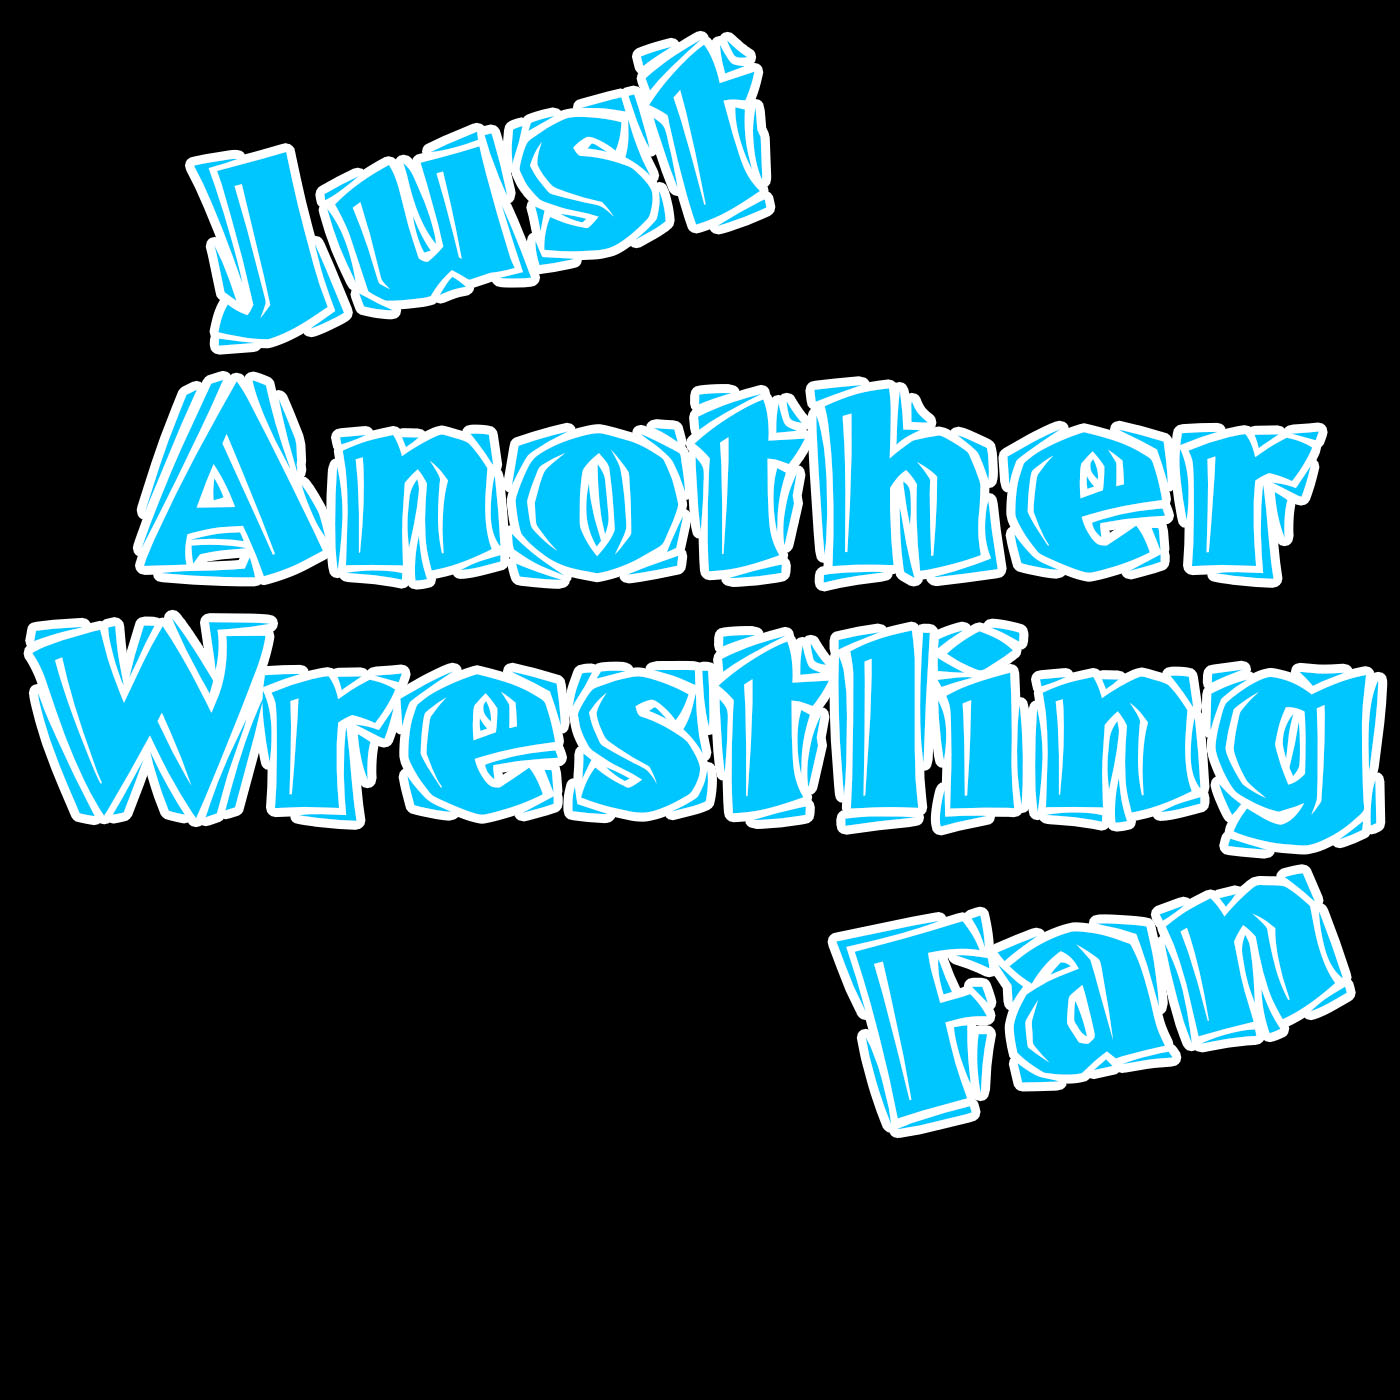 Just Another Wrestling Podcast